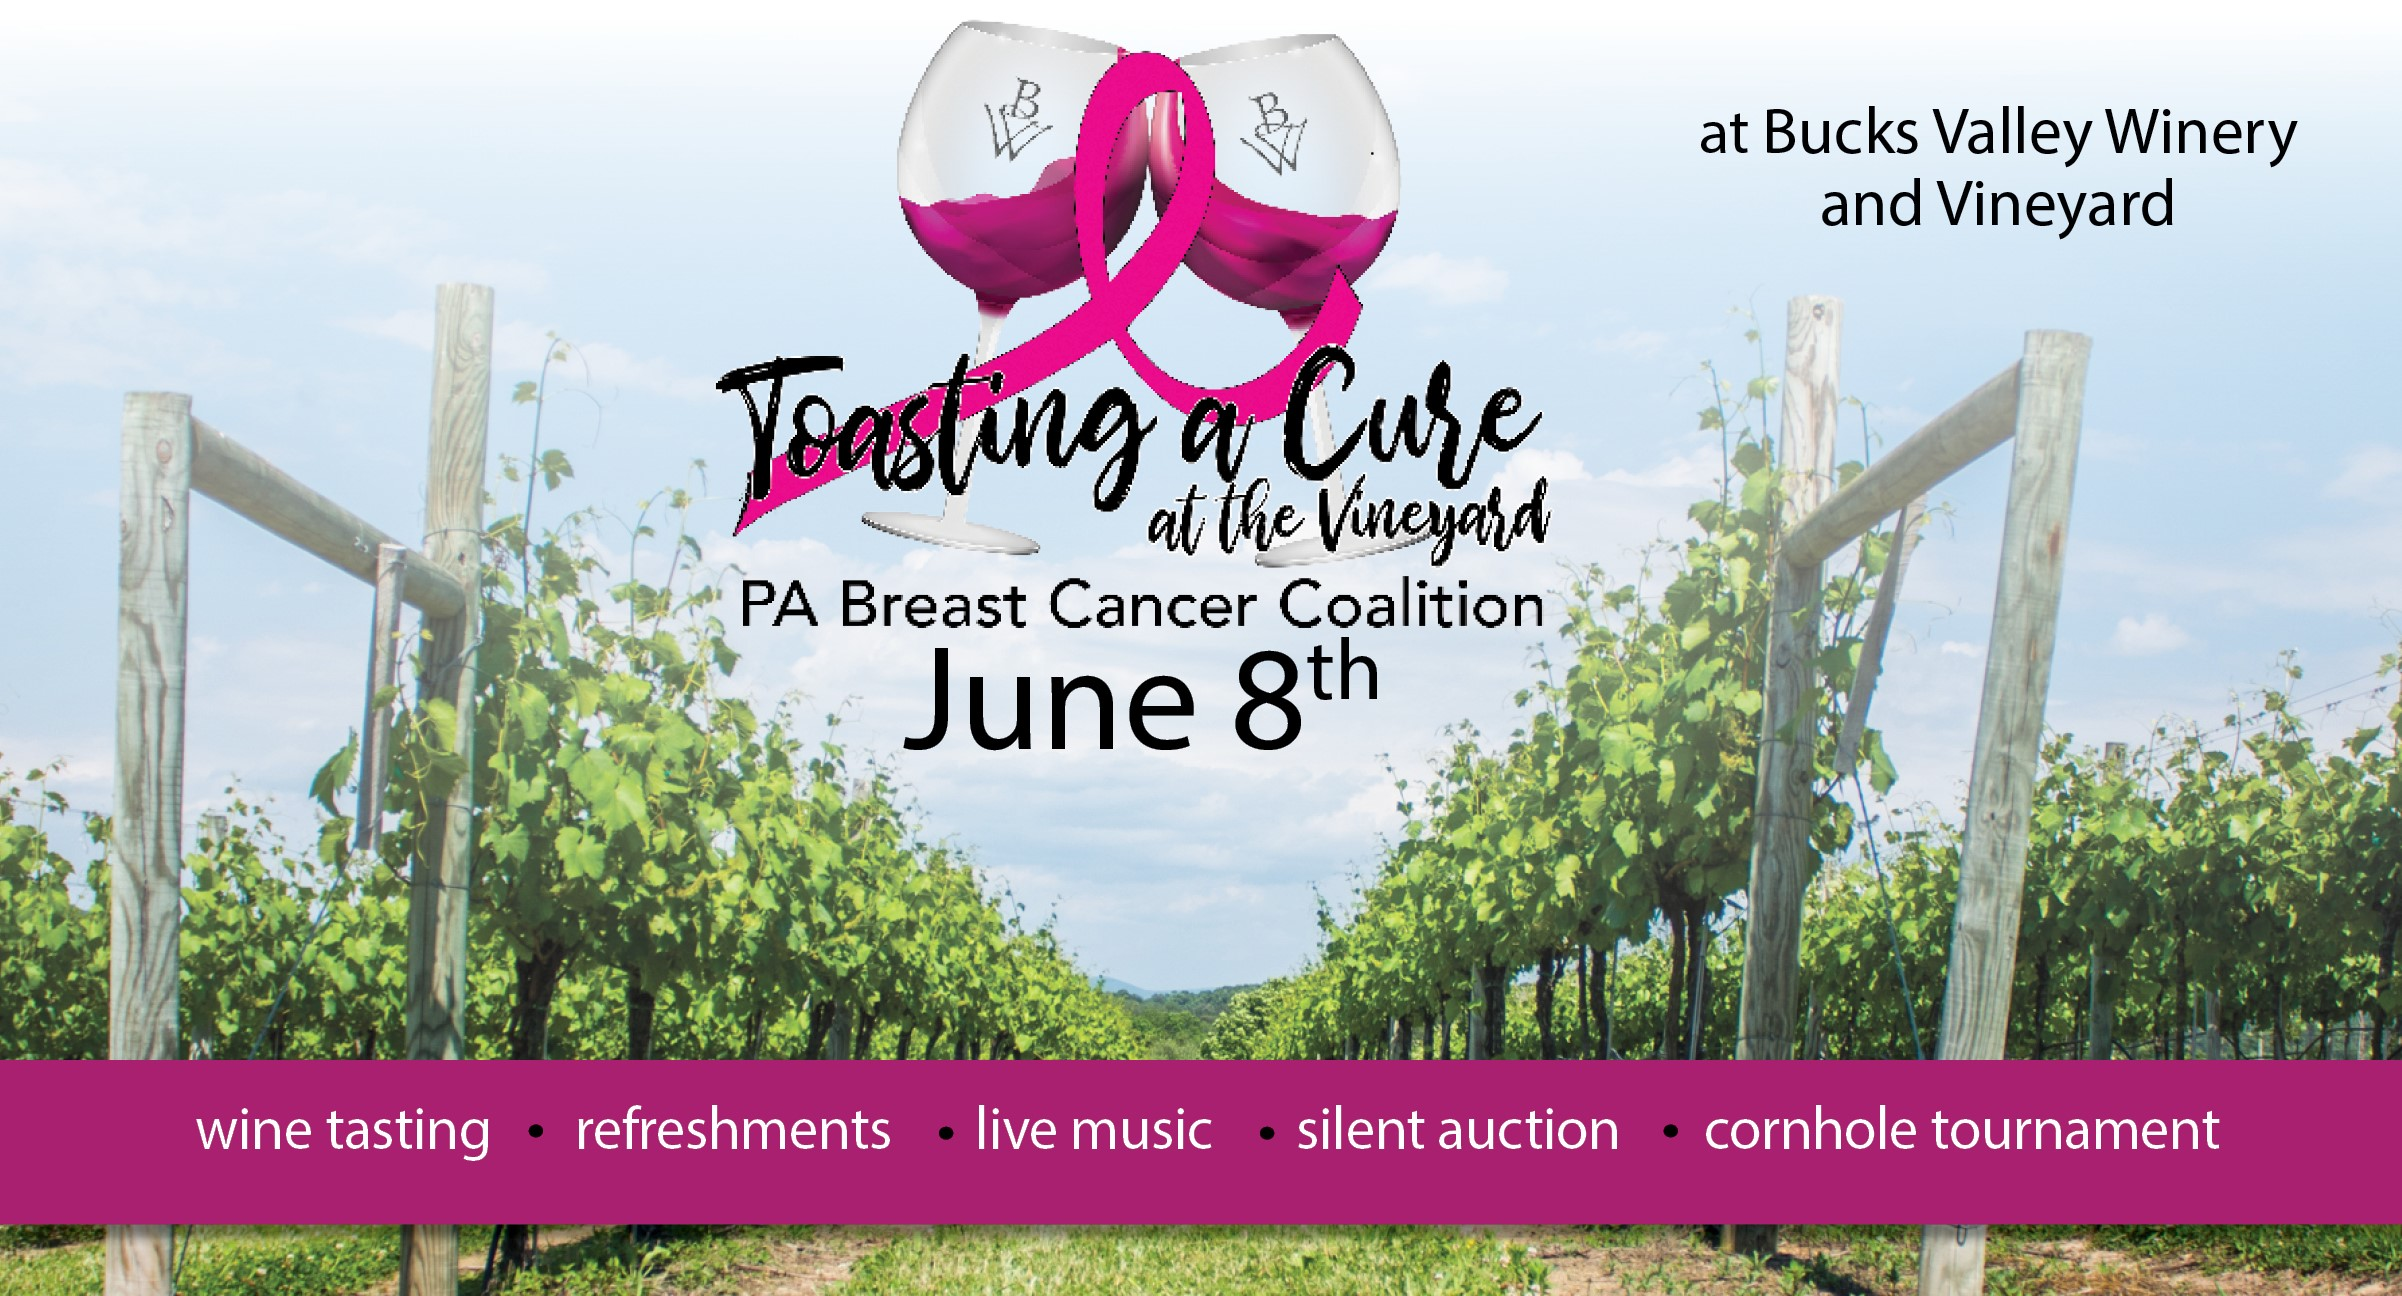 Celebrate the 5th Annual Toasting a Cure at the Vineyard